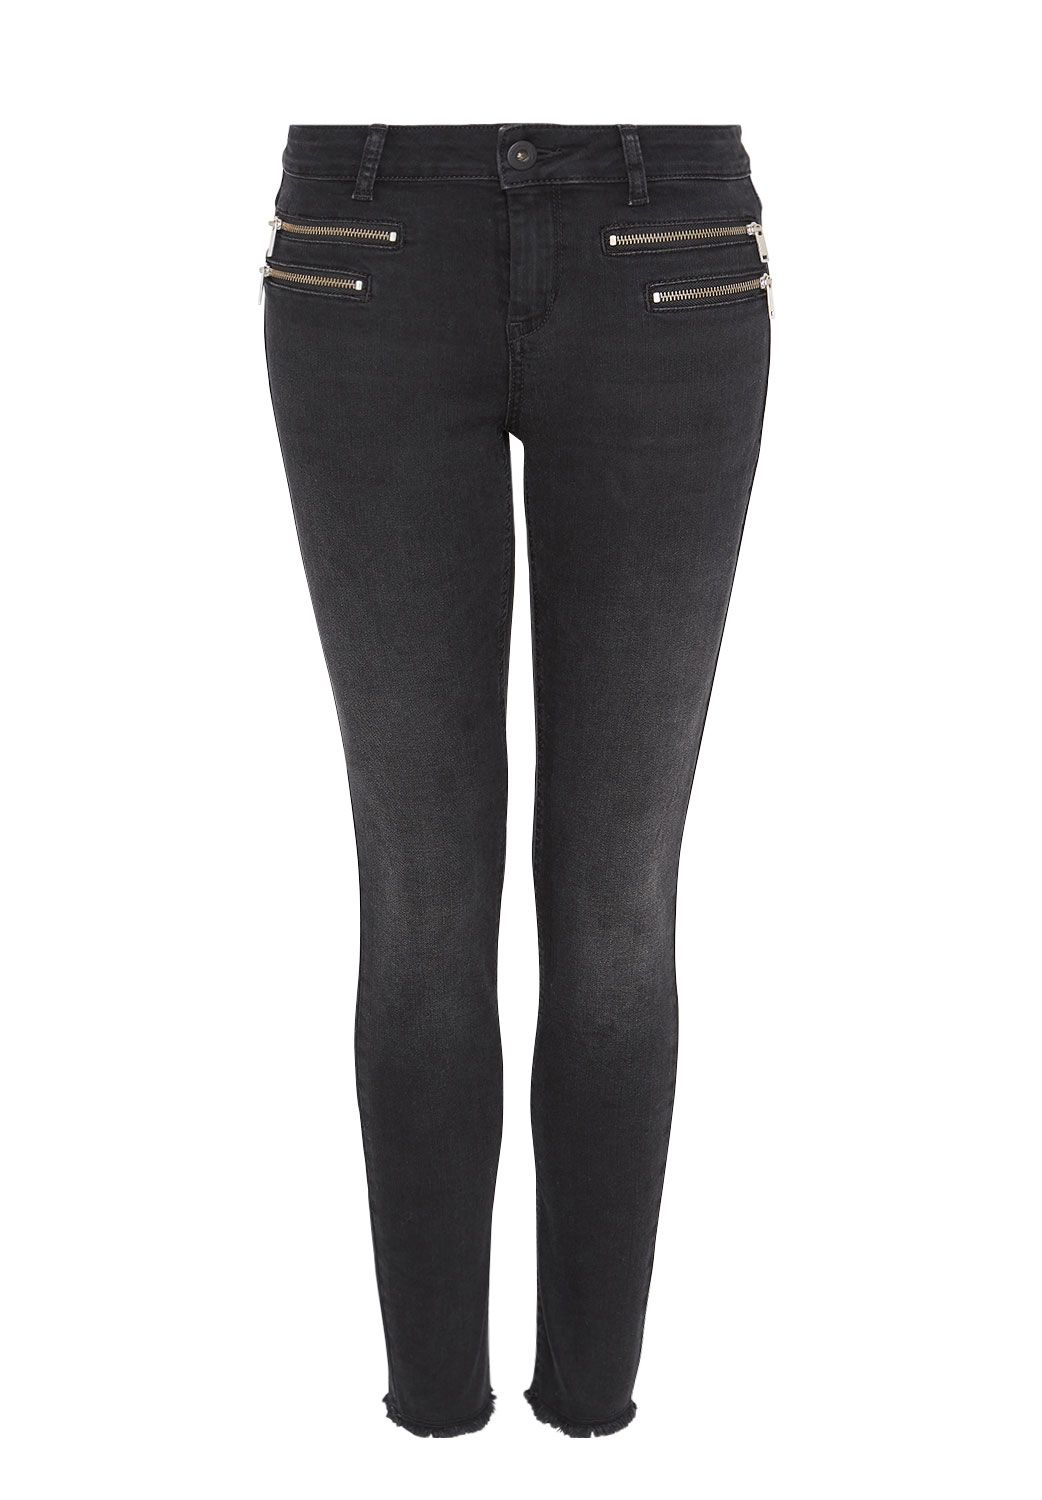 Hallhuber Hallhuber Cropped skinny jeans with zippers, Black